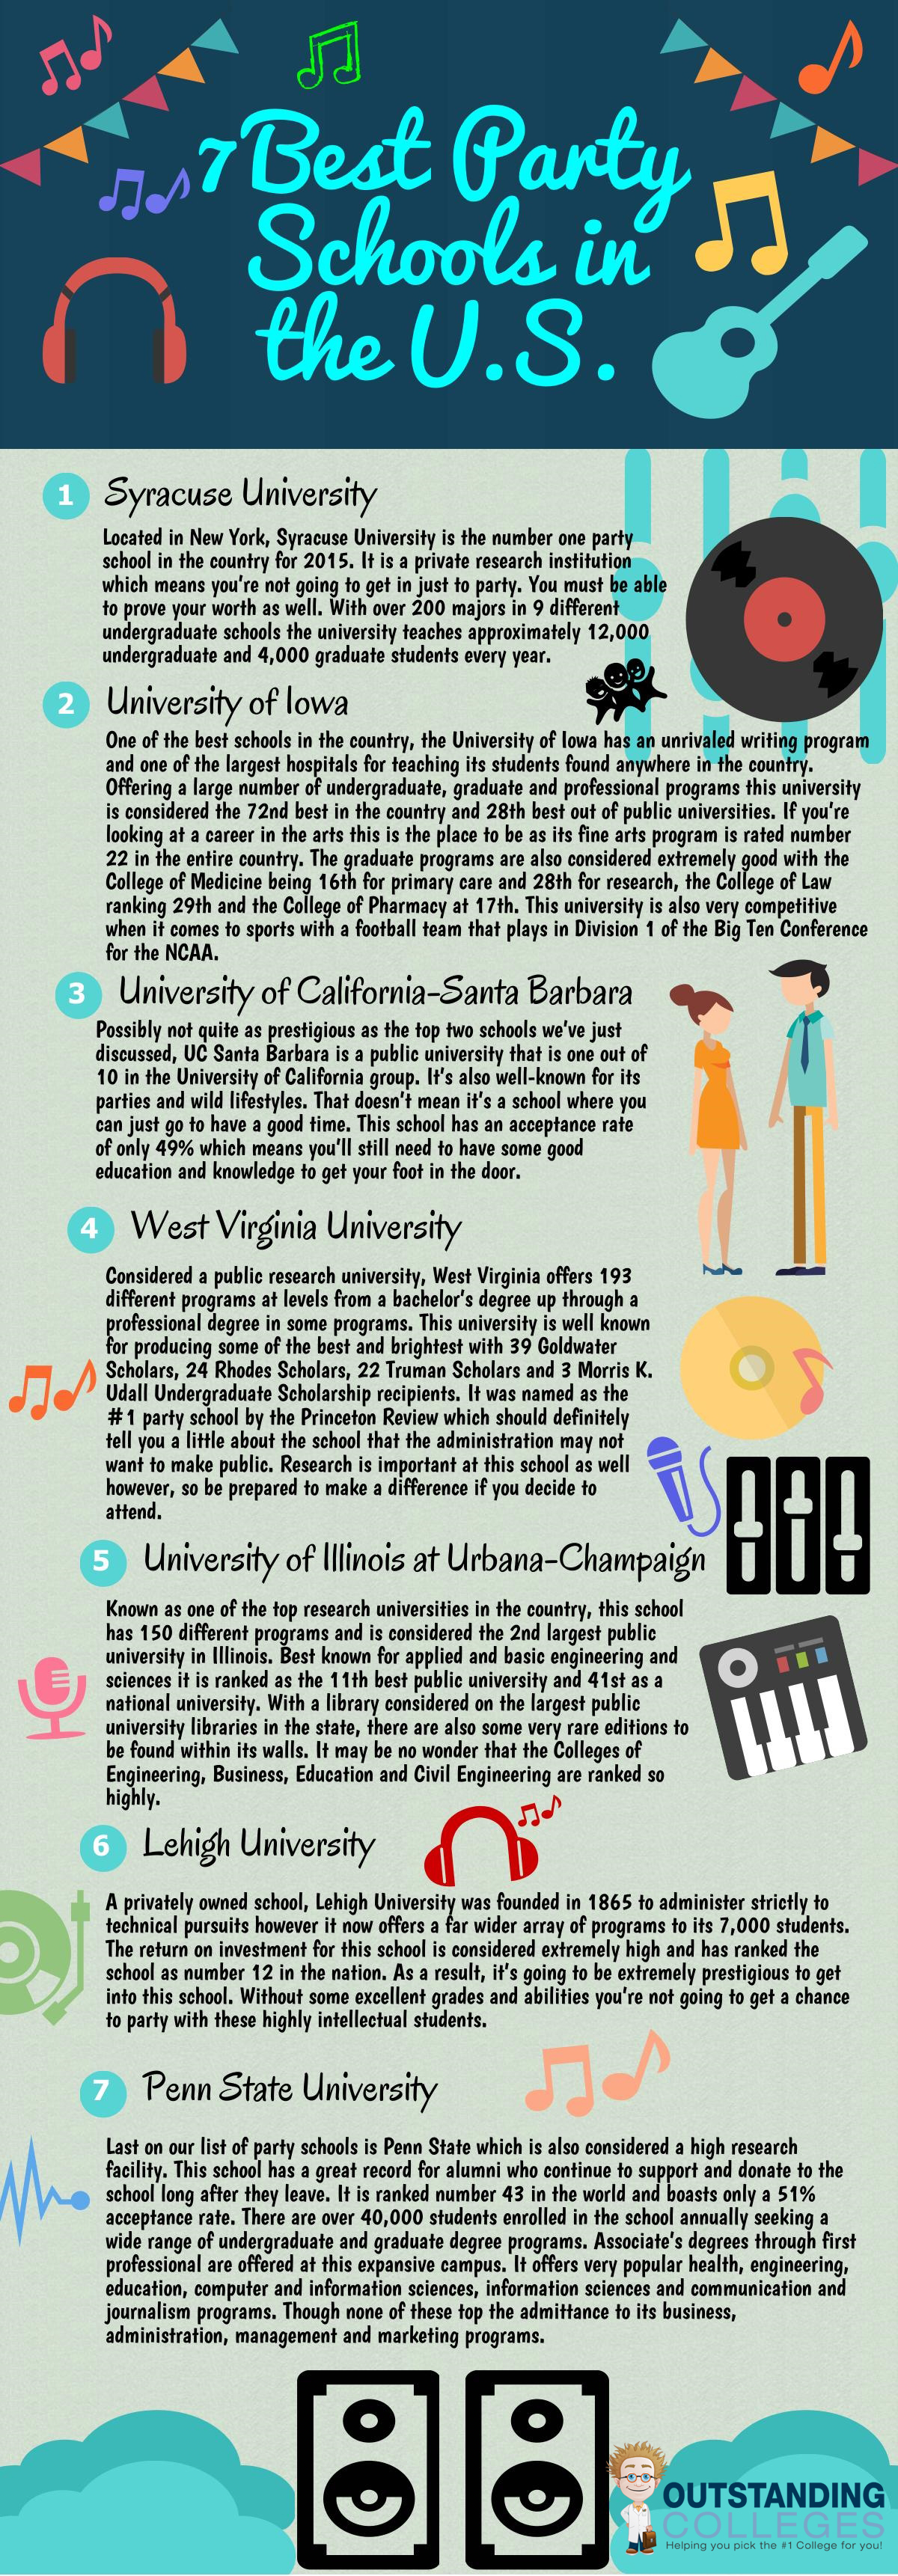 7 best party schools in the U.S. infographic